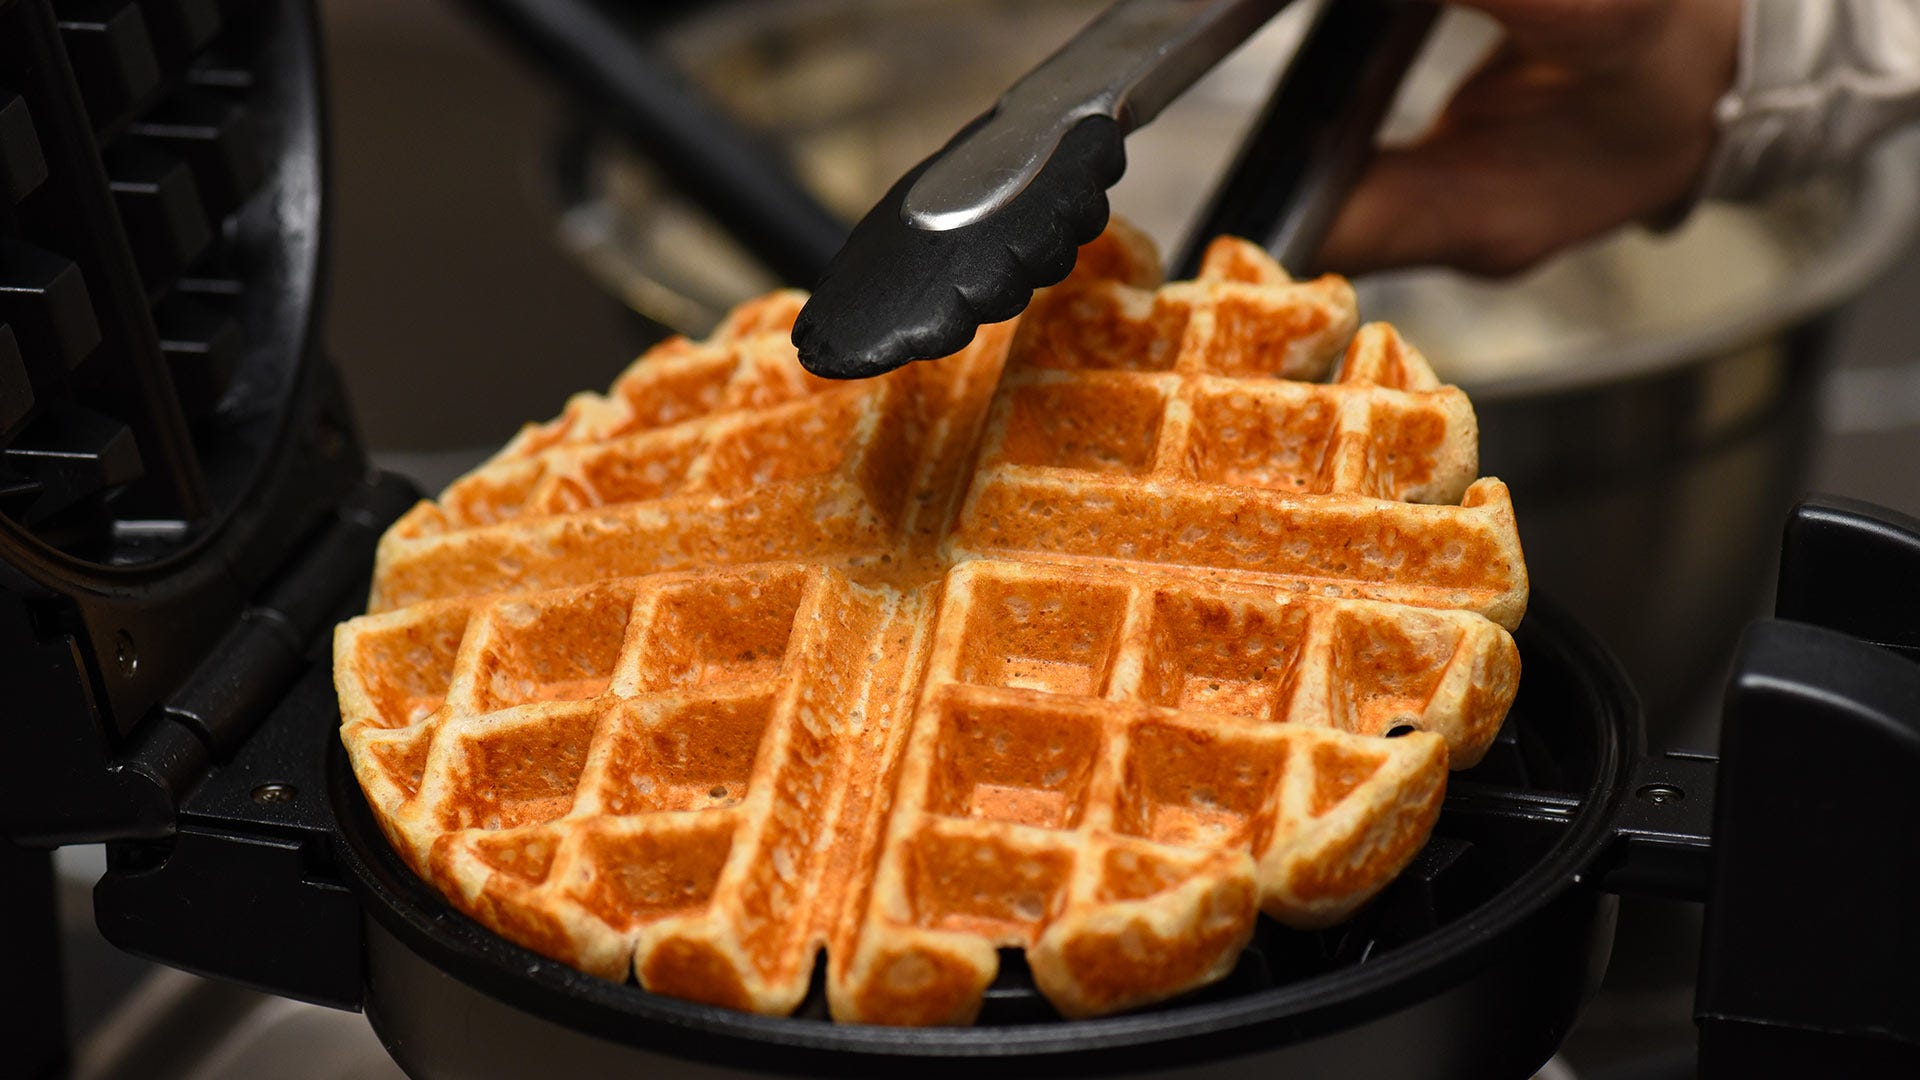 A man removing a fresh waffle from a waffle iron using silicone tongs.